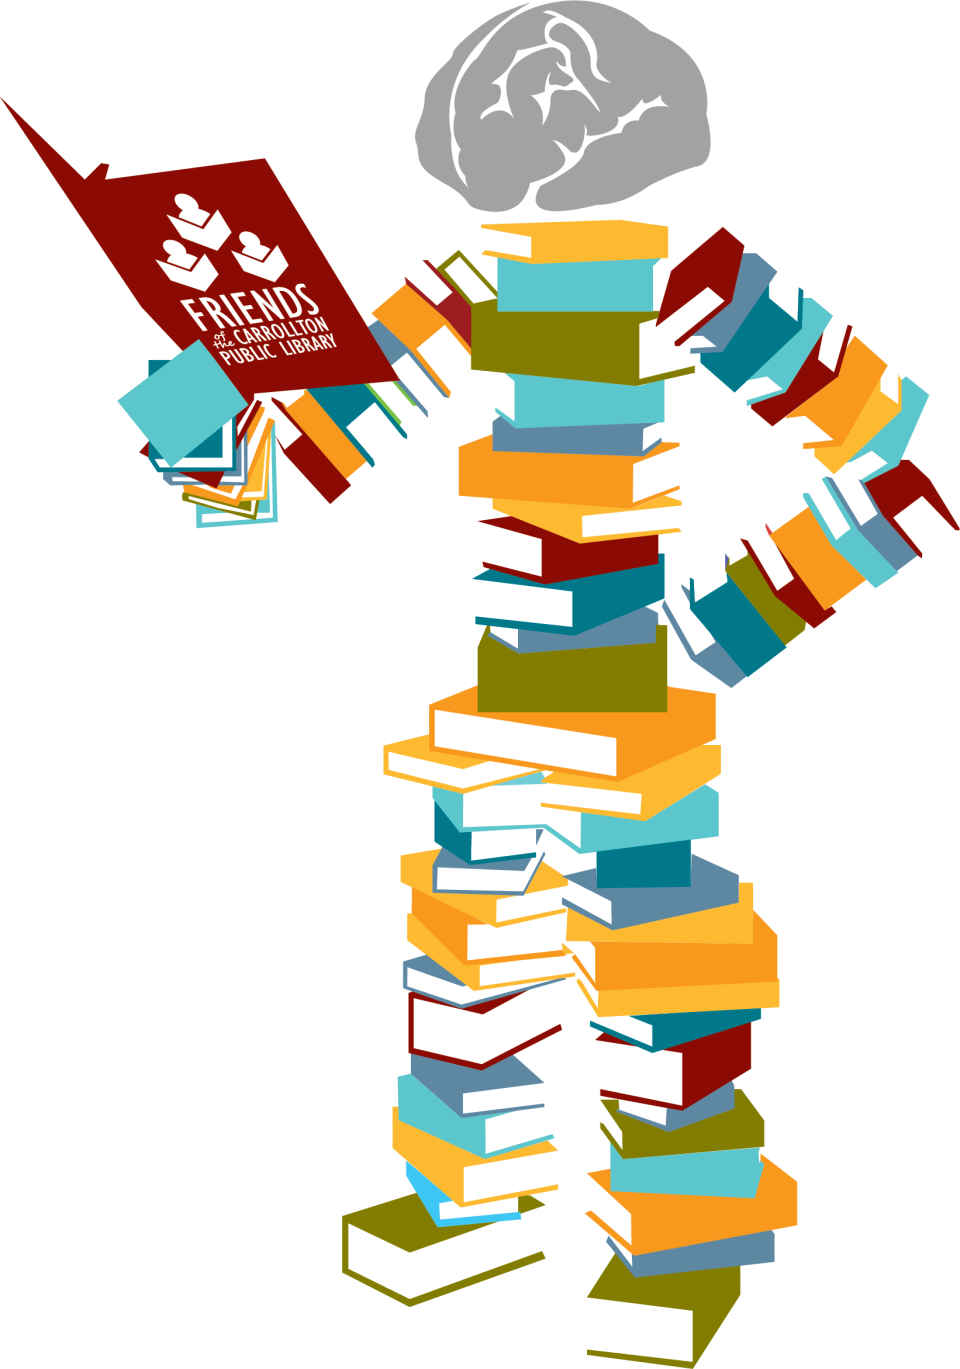 City reading book clipart jpg transparent download Celebrate National Library Week April 8-14 at the Carrollton Public ... jpg transparent download